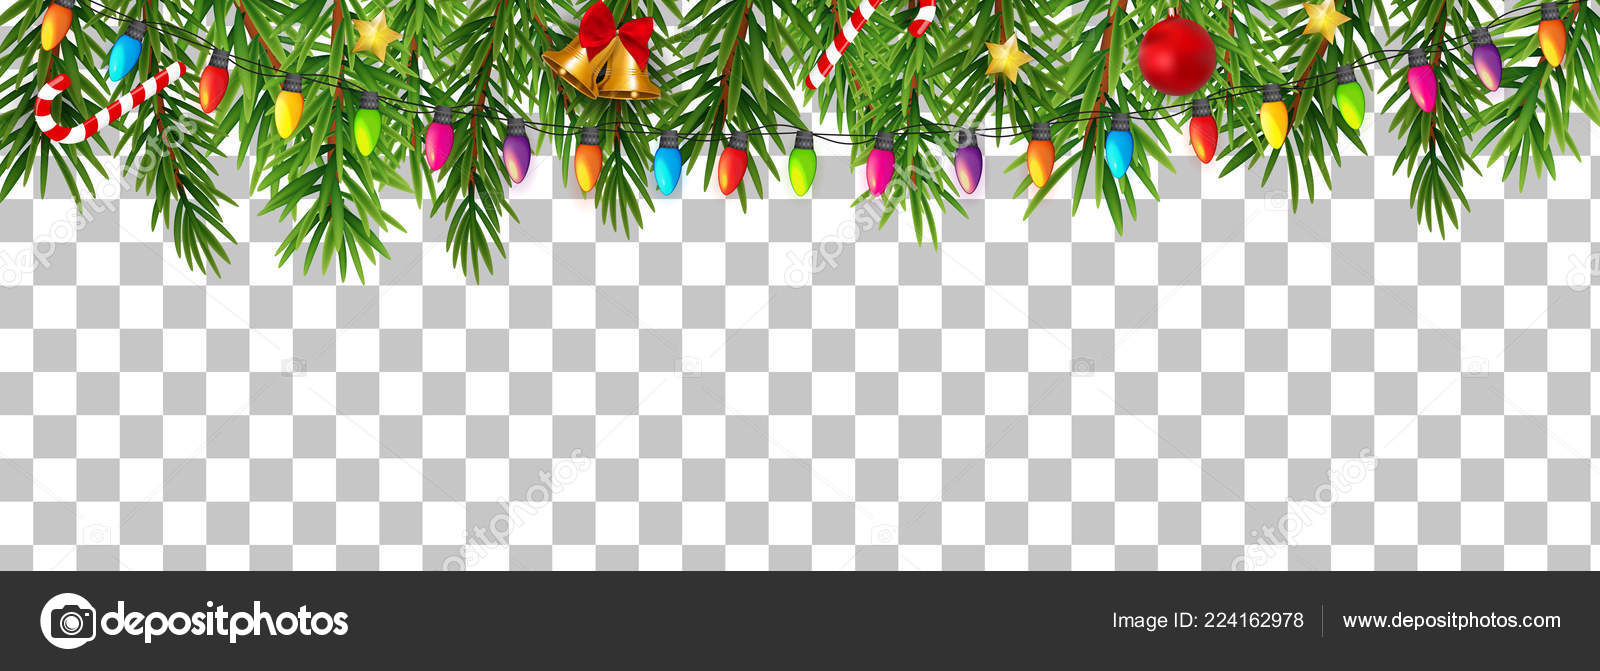 Merry Christmas No Background.Abstract Holiday New Year And Merry Christmas Border On